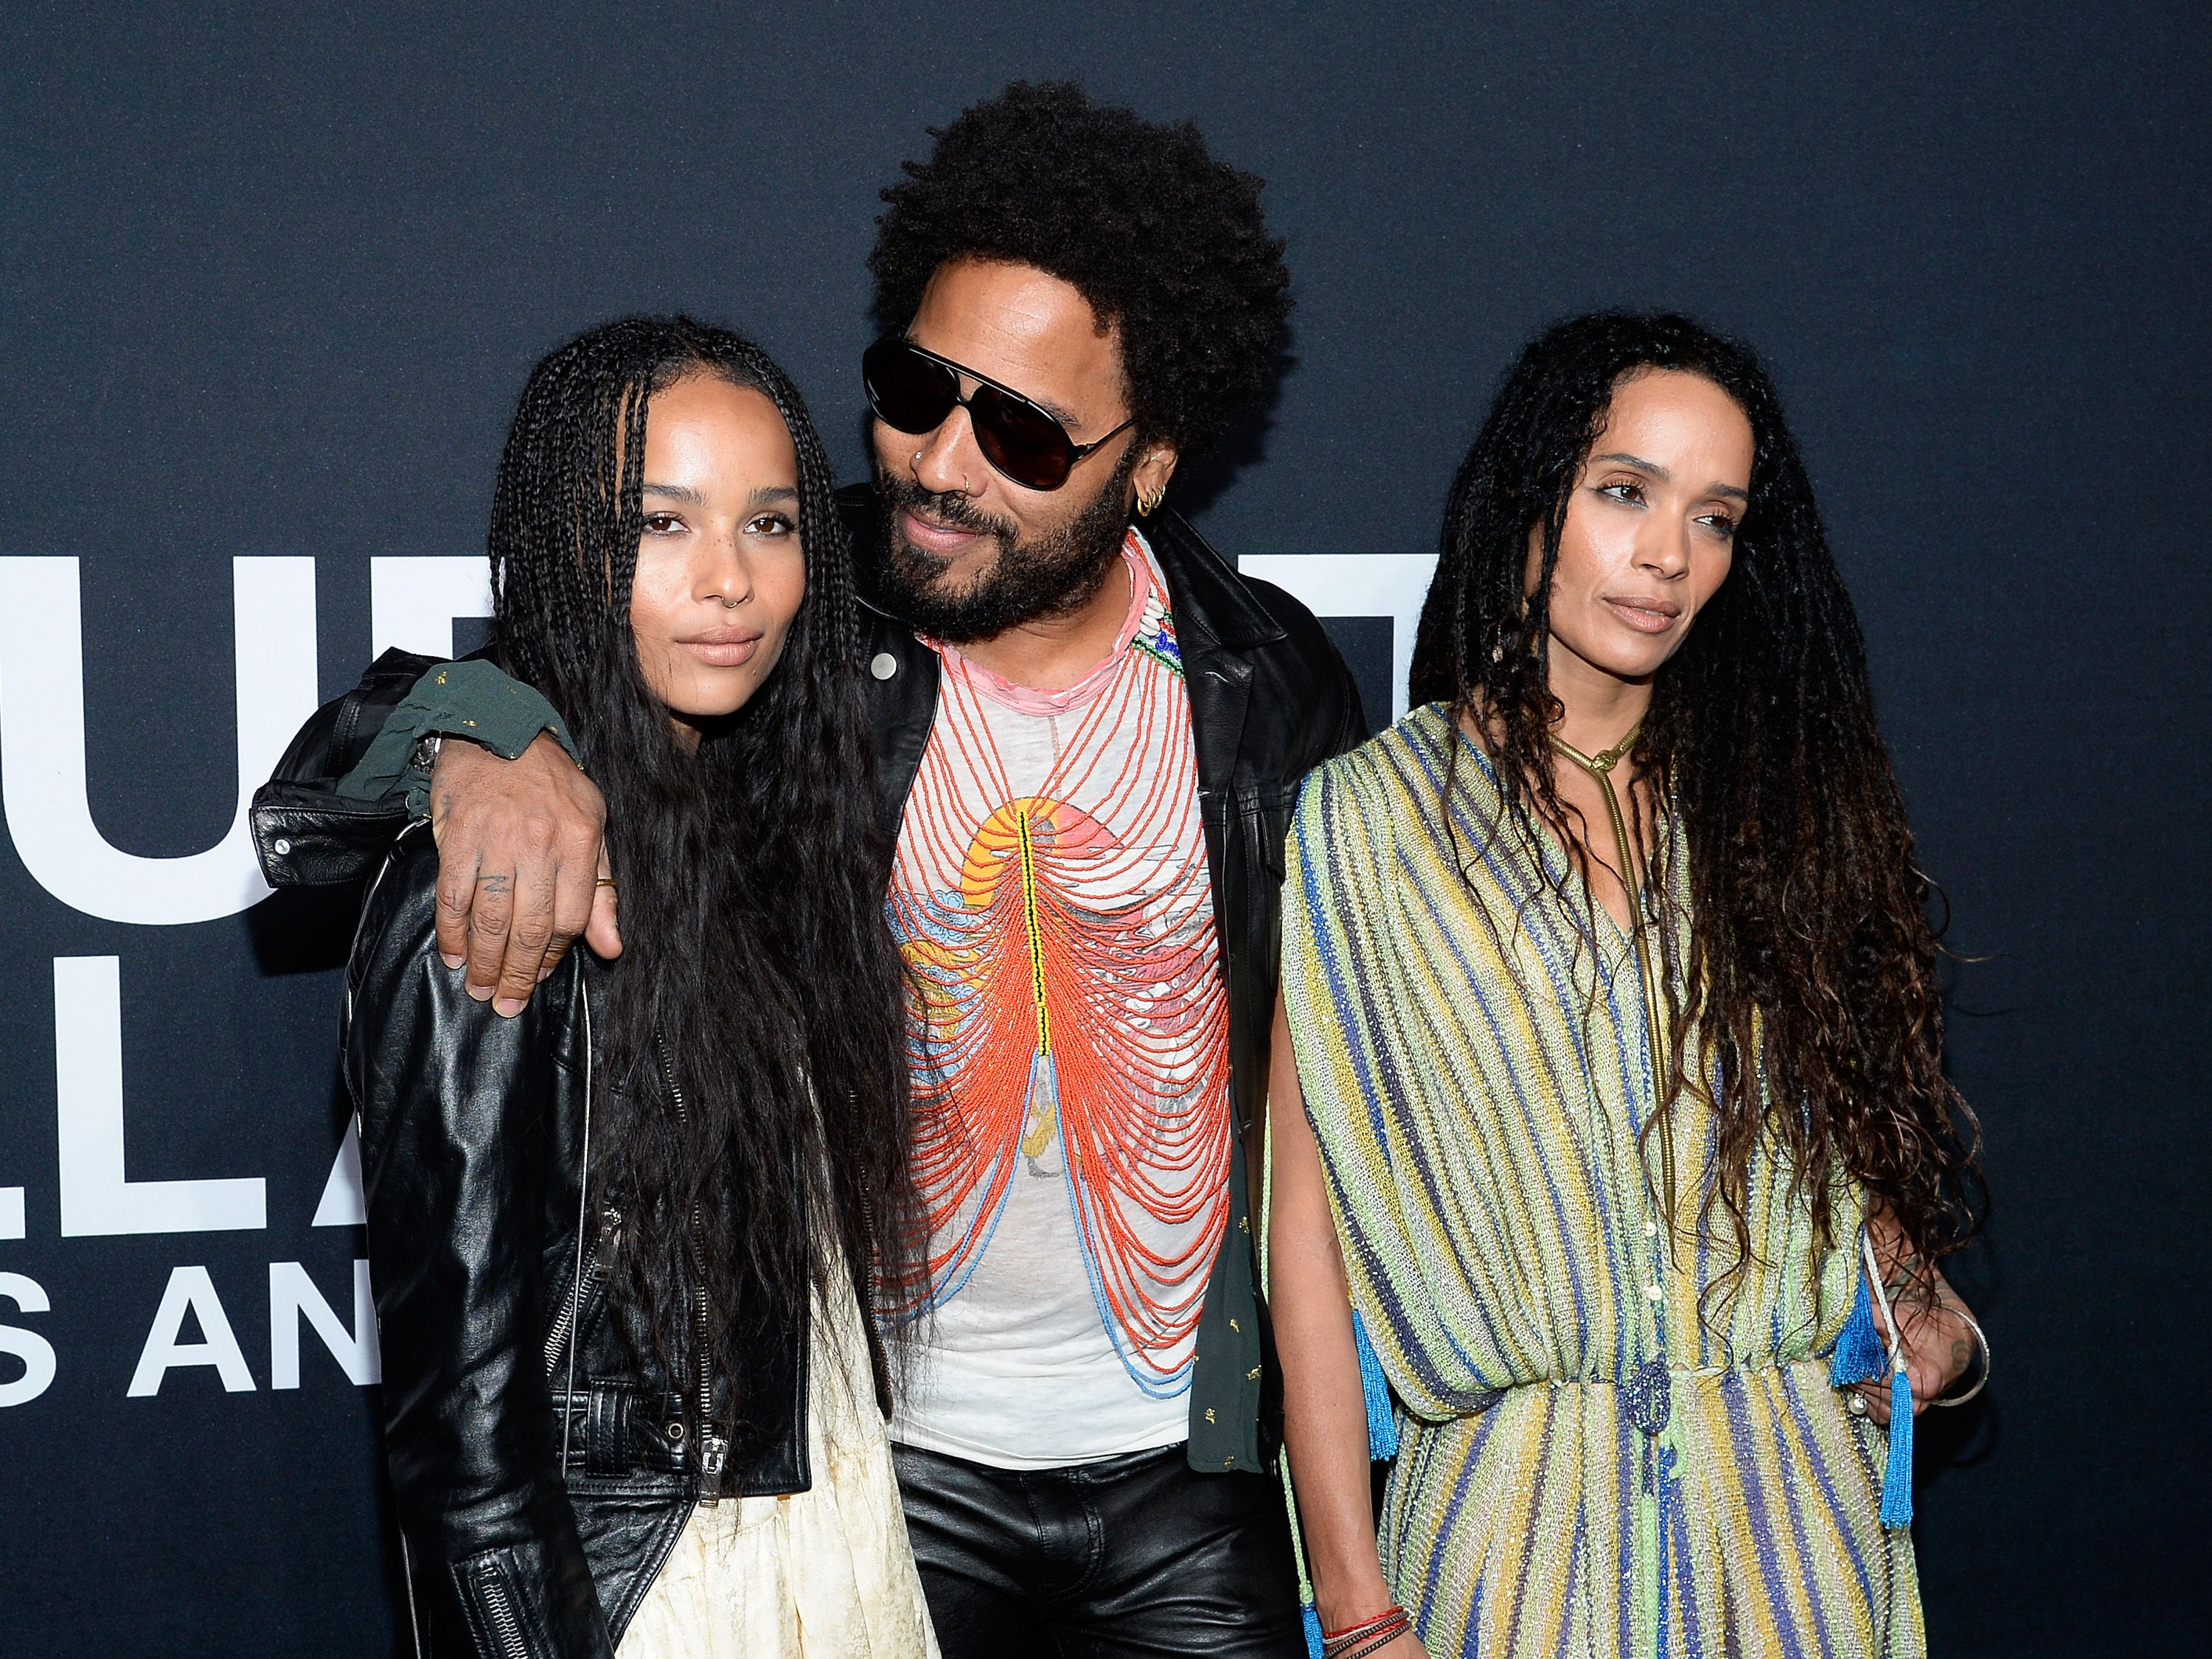 Zoe Kravitz S Parents Lisa Bonet And Lenny Kravitz Were So